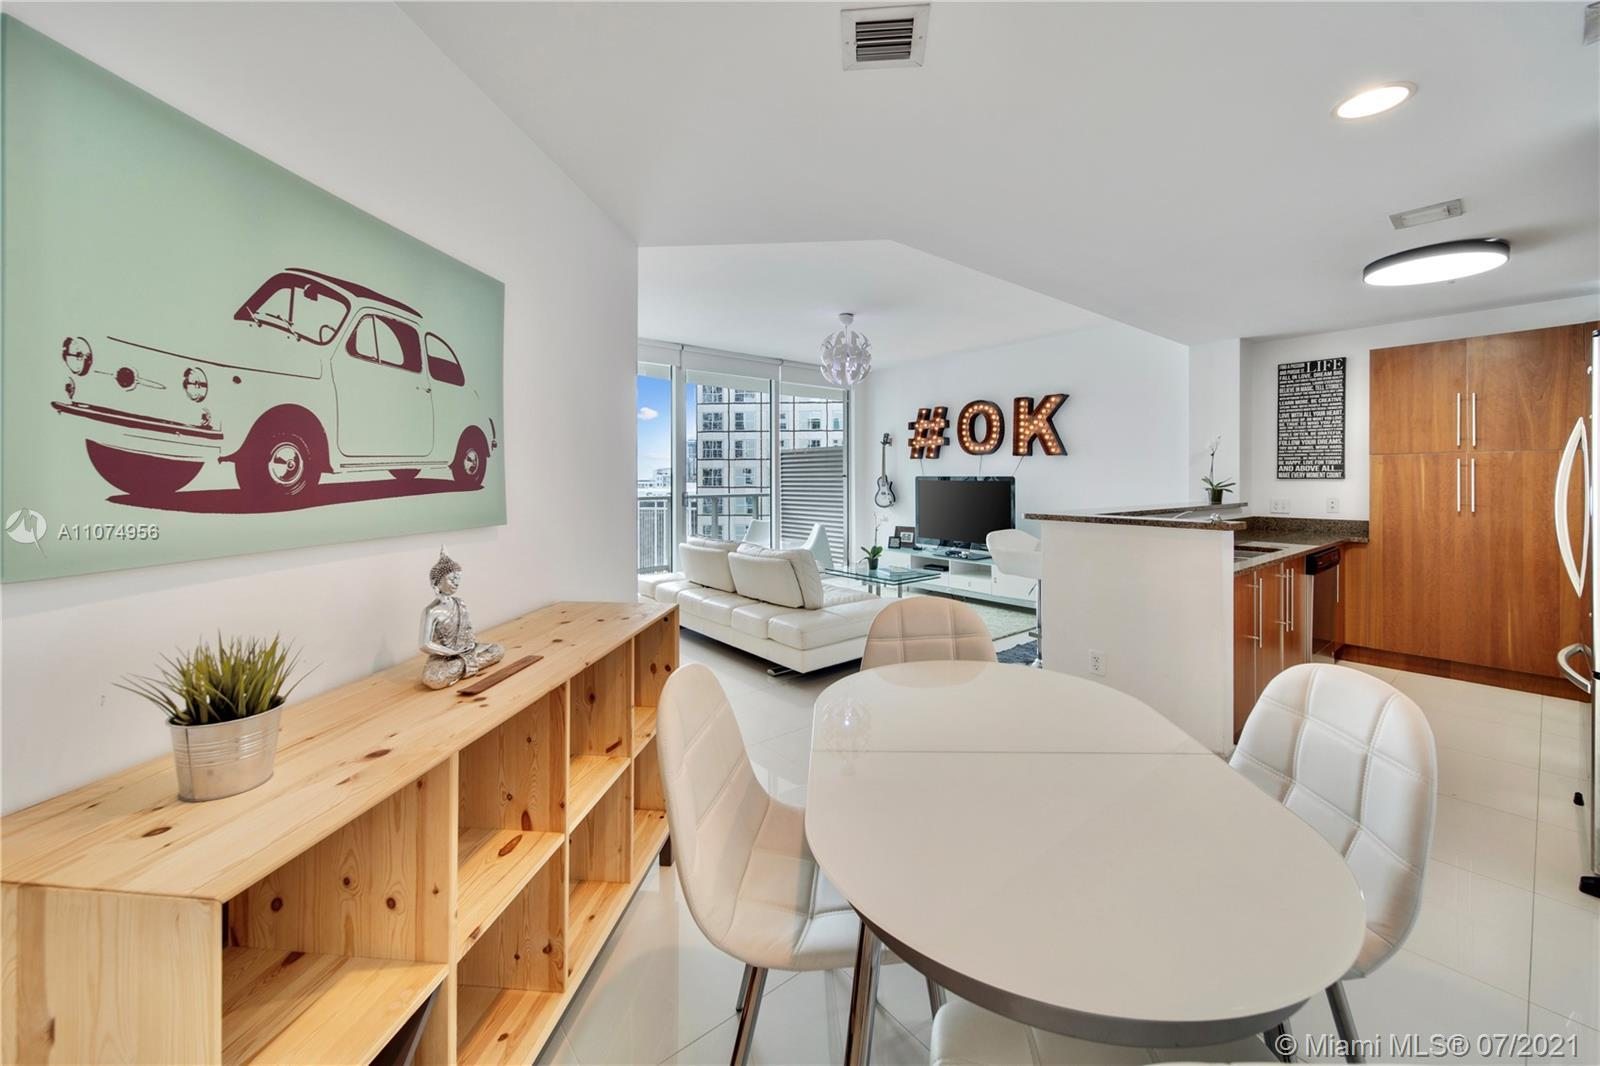 RENTED $3000 X MONTH UNTIL 4/30/21. Great video and virtual tour available, pls request.  Impeccable